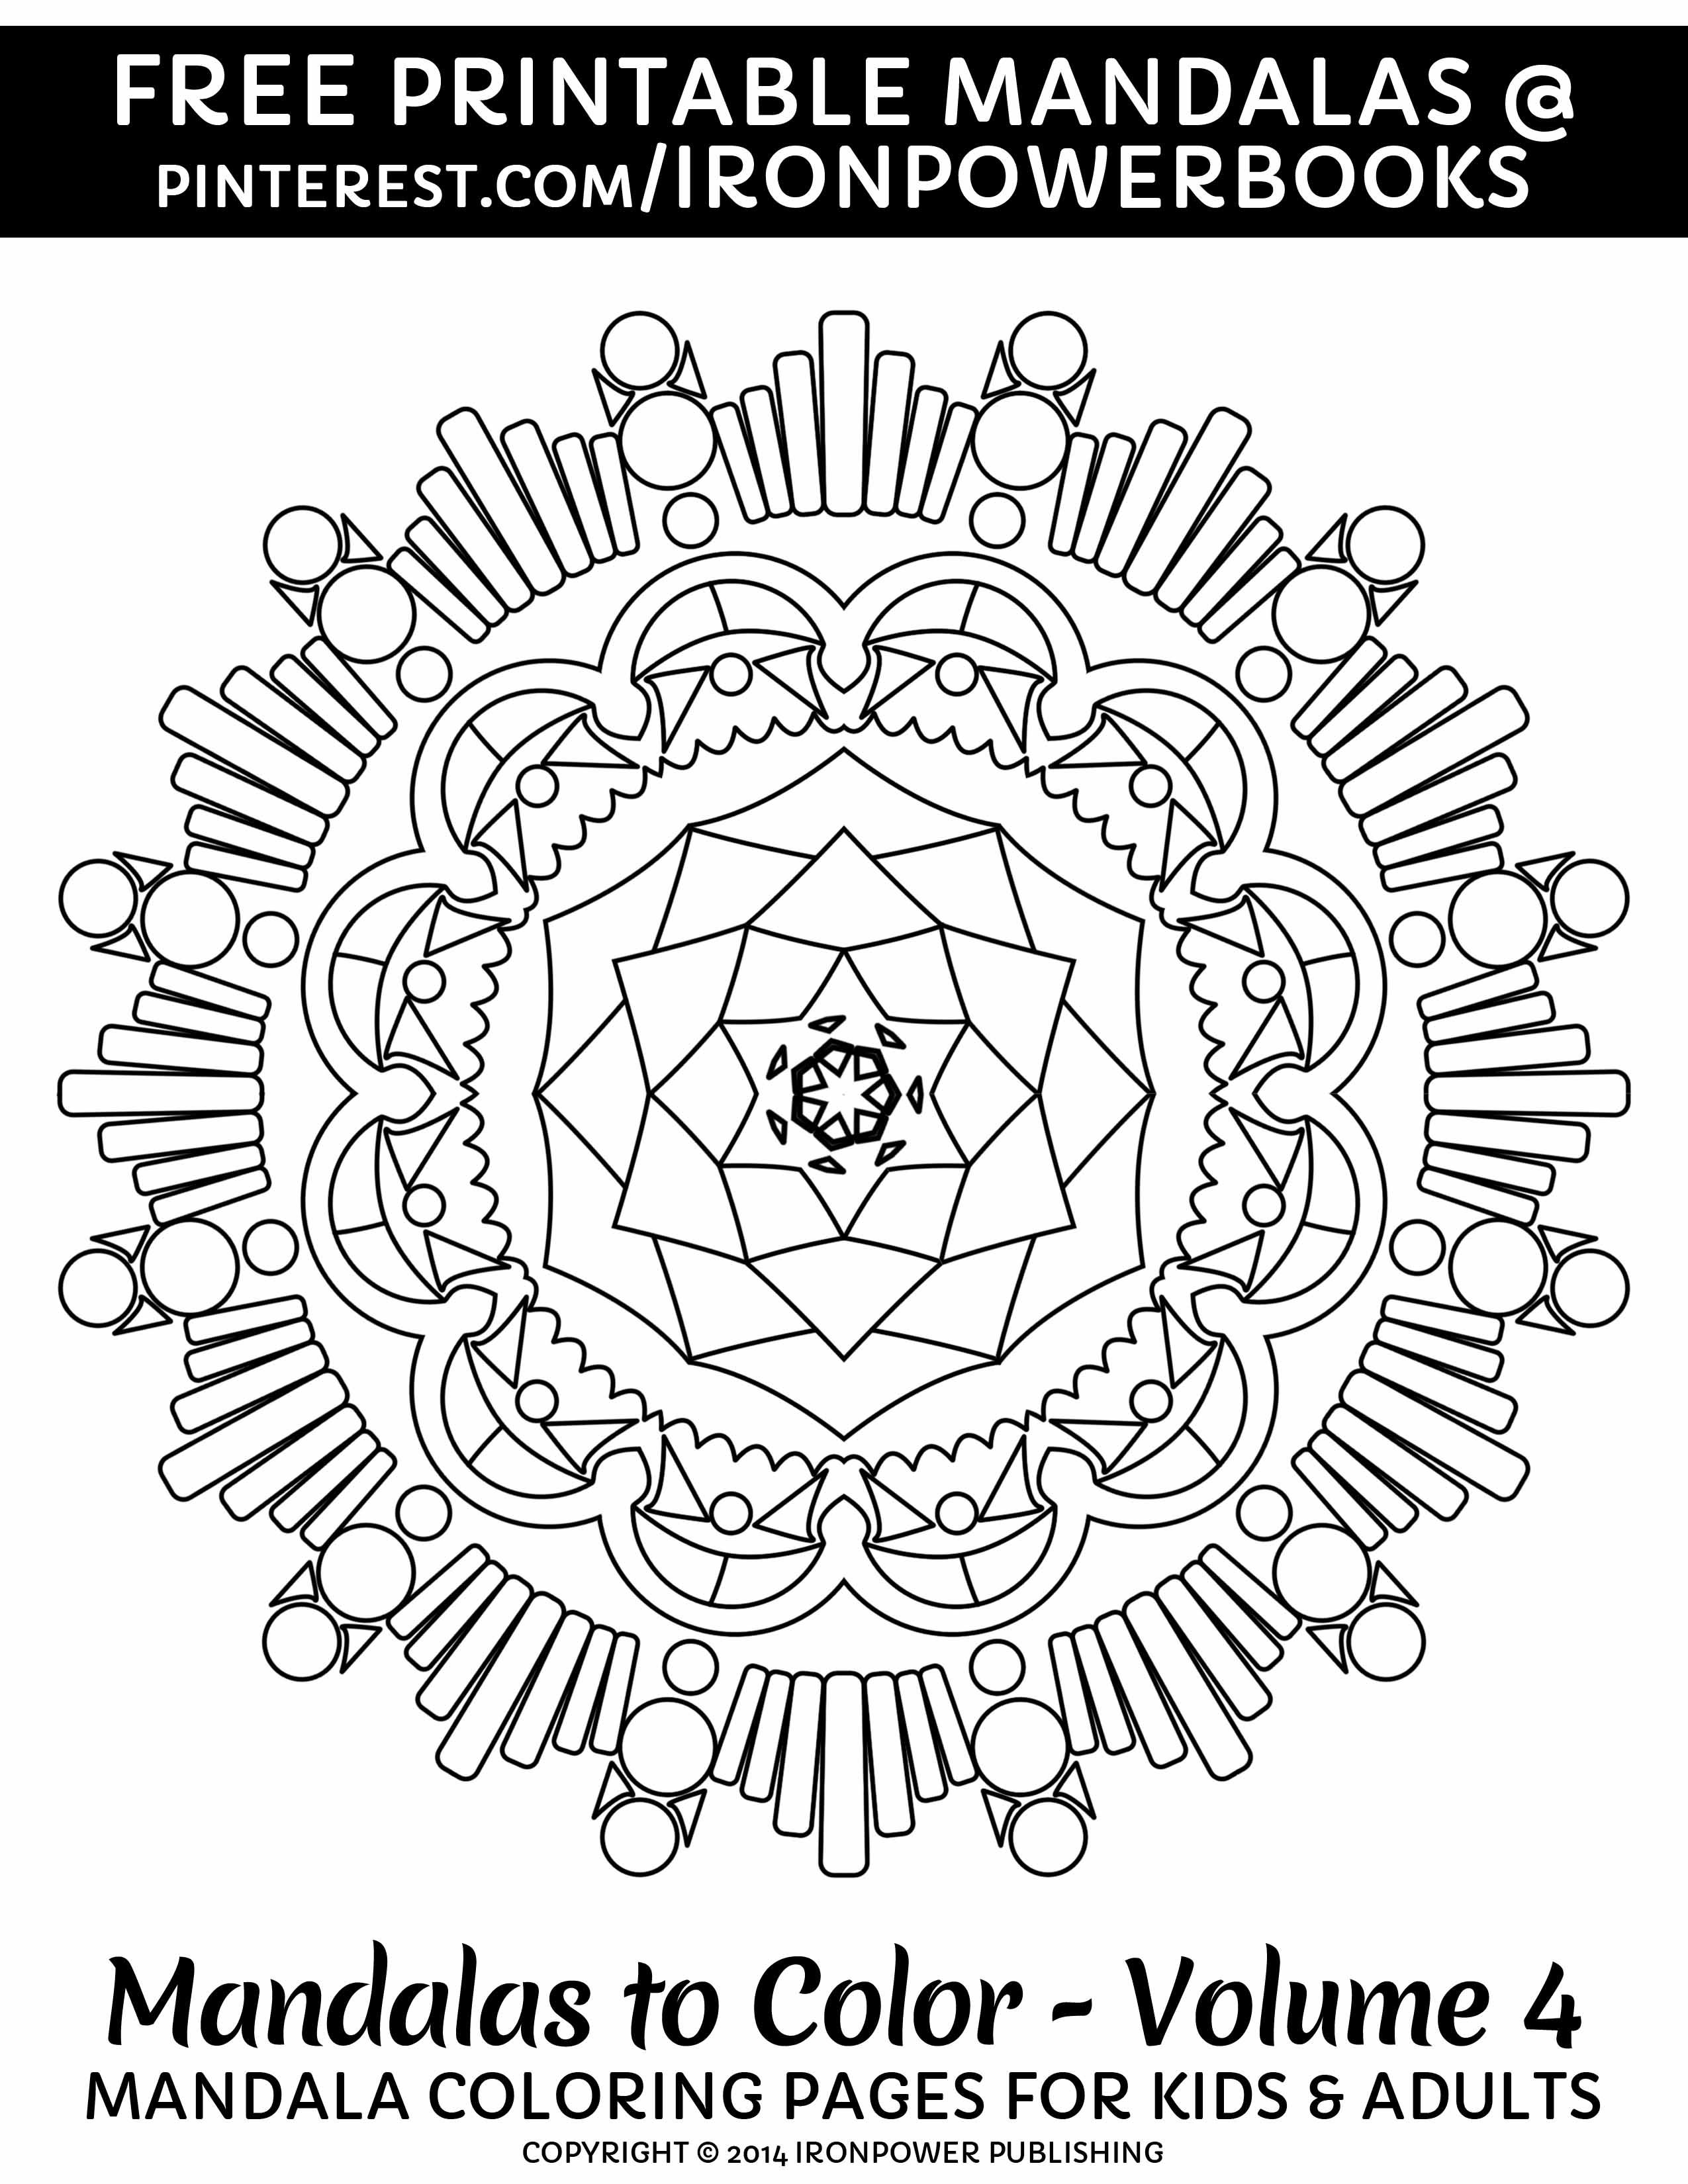 Art Therapy with this FREE Printable Mandala Coloring Page from